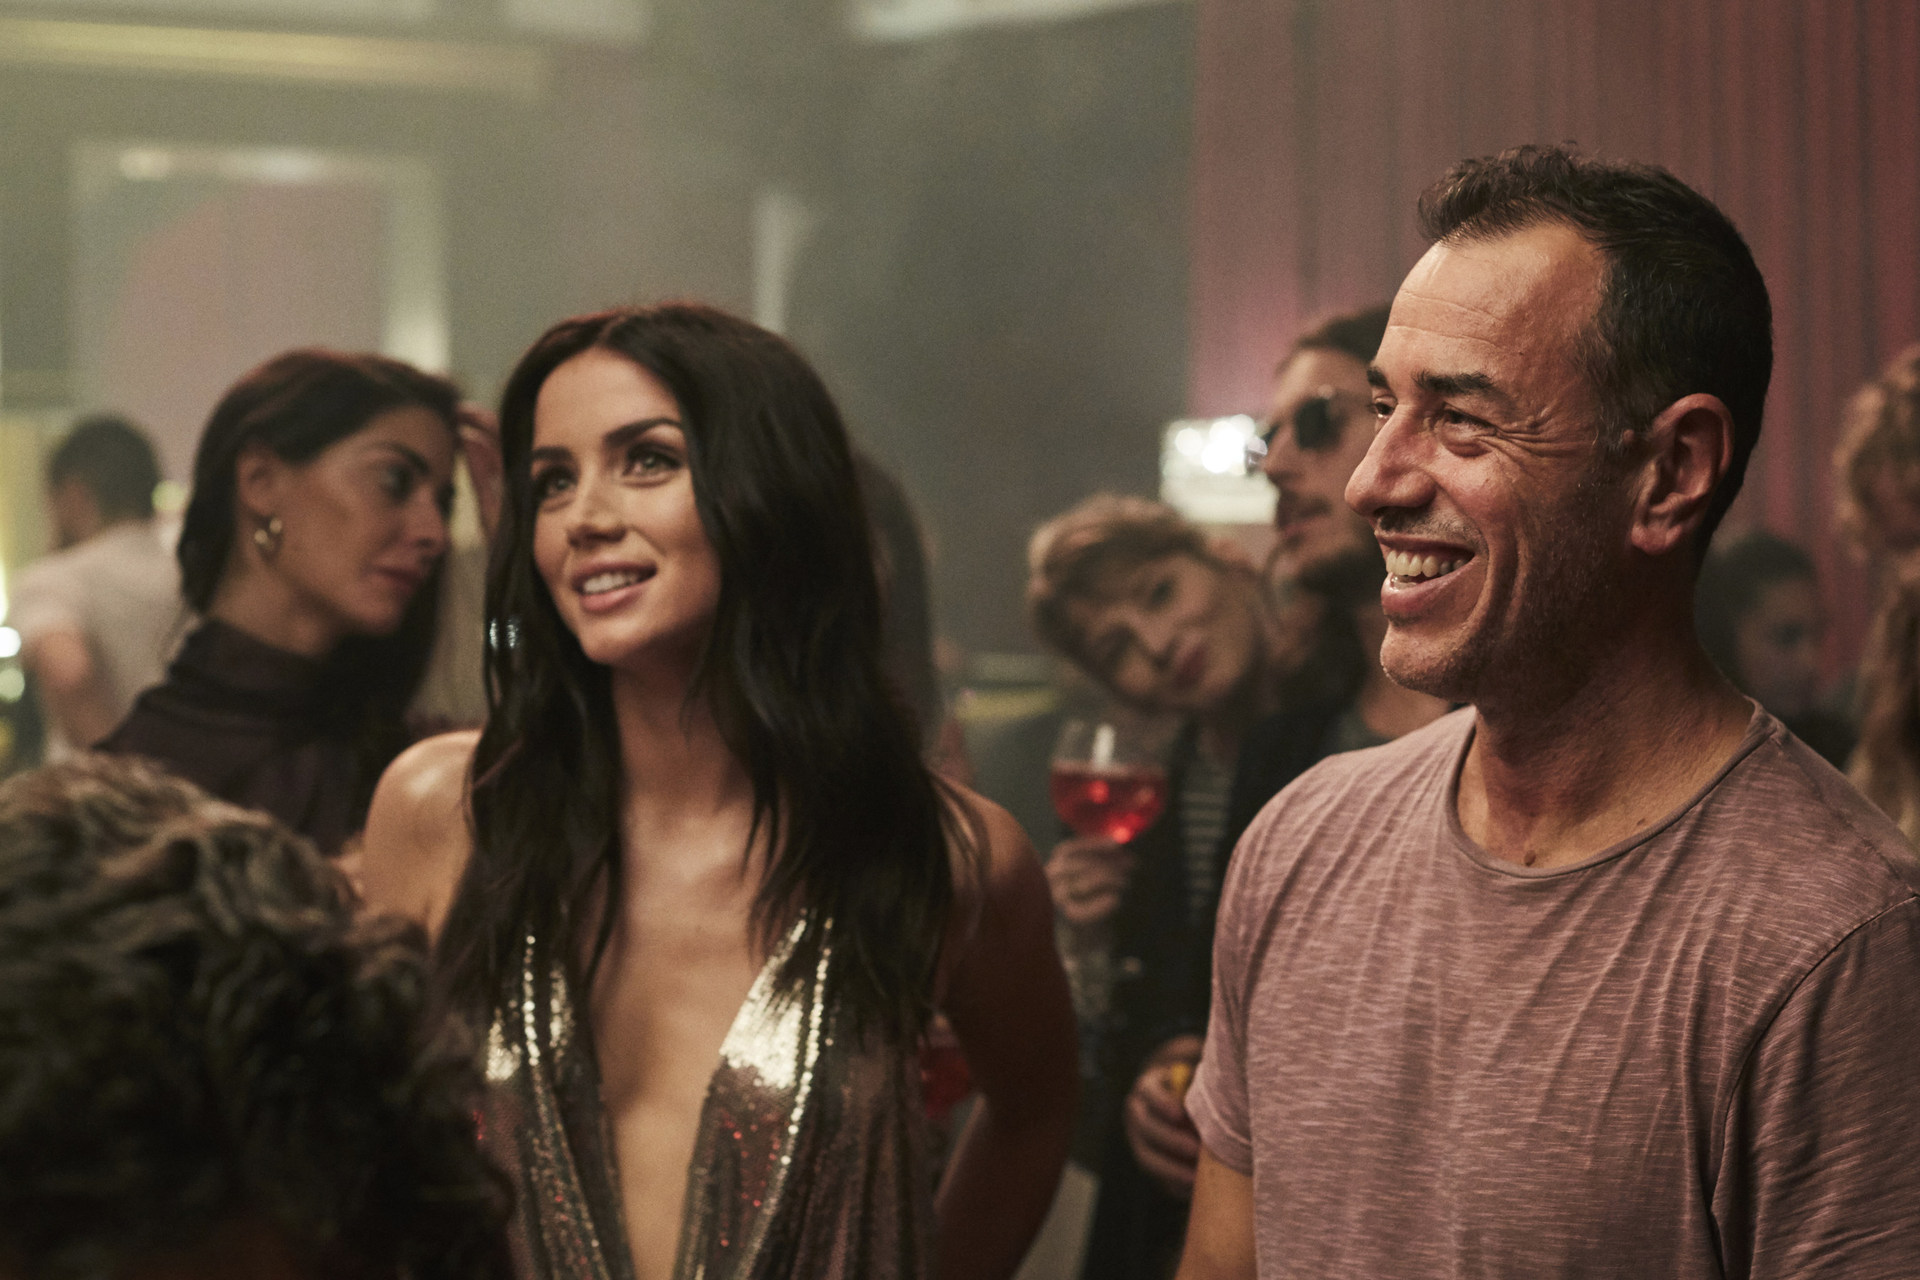 Ana De Armas and Director Matteo Garrone behind the scenes of the 2019 Campari Red Diaries short movie, Entering Red, in Milan